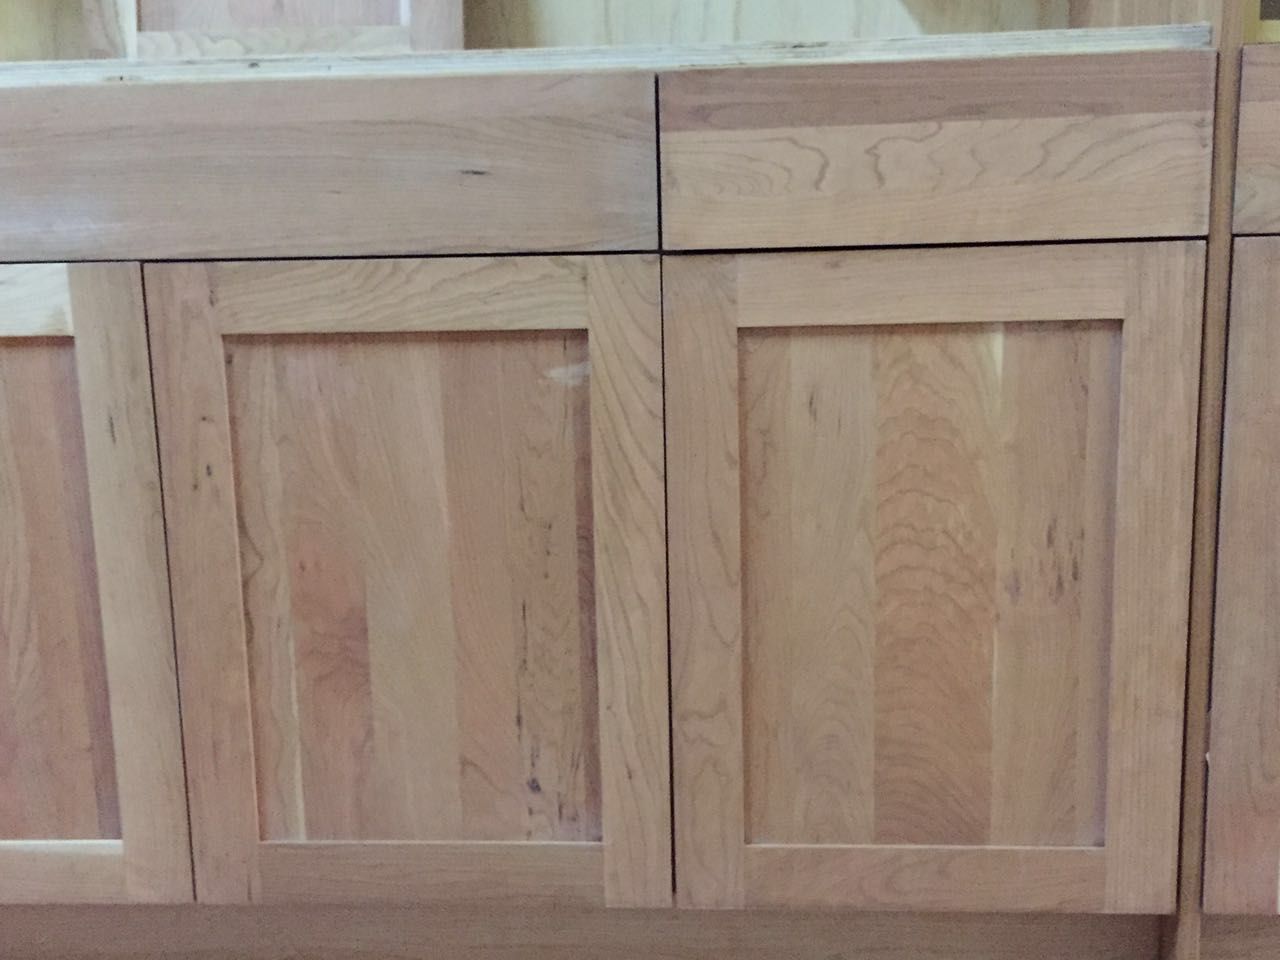 Unfinished Kitchen Cabinets. unfinished natural American cherry shaker Kitchen Cabinets gallery image